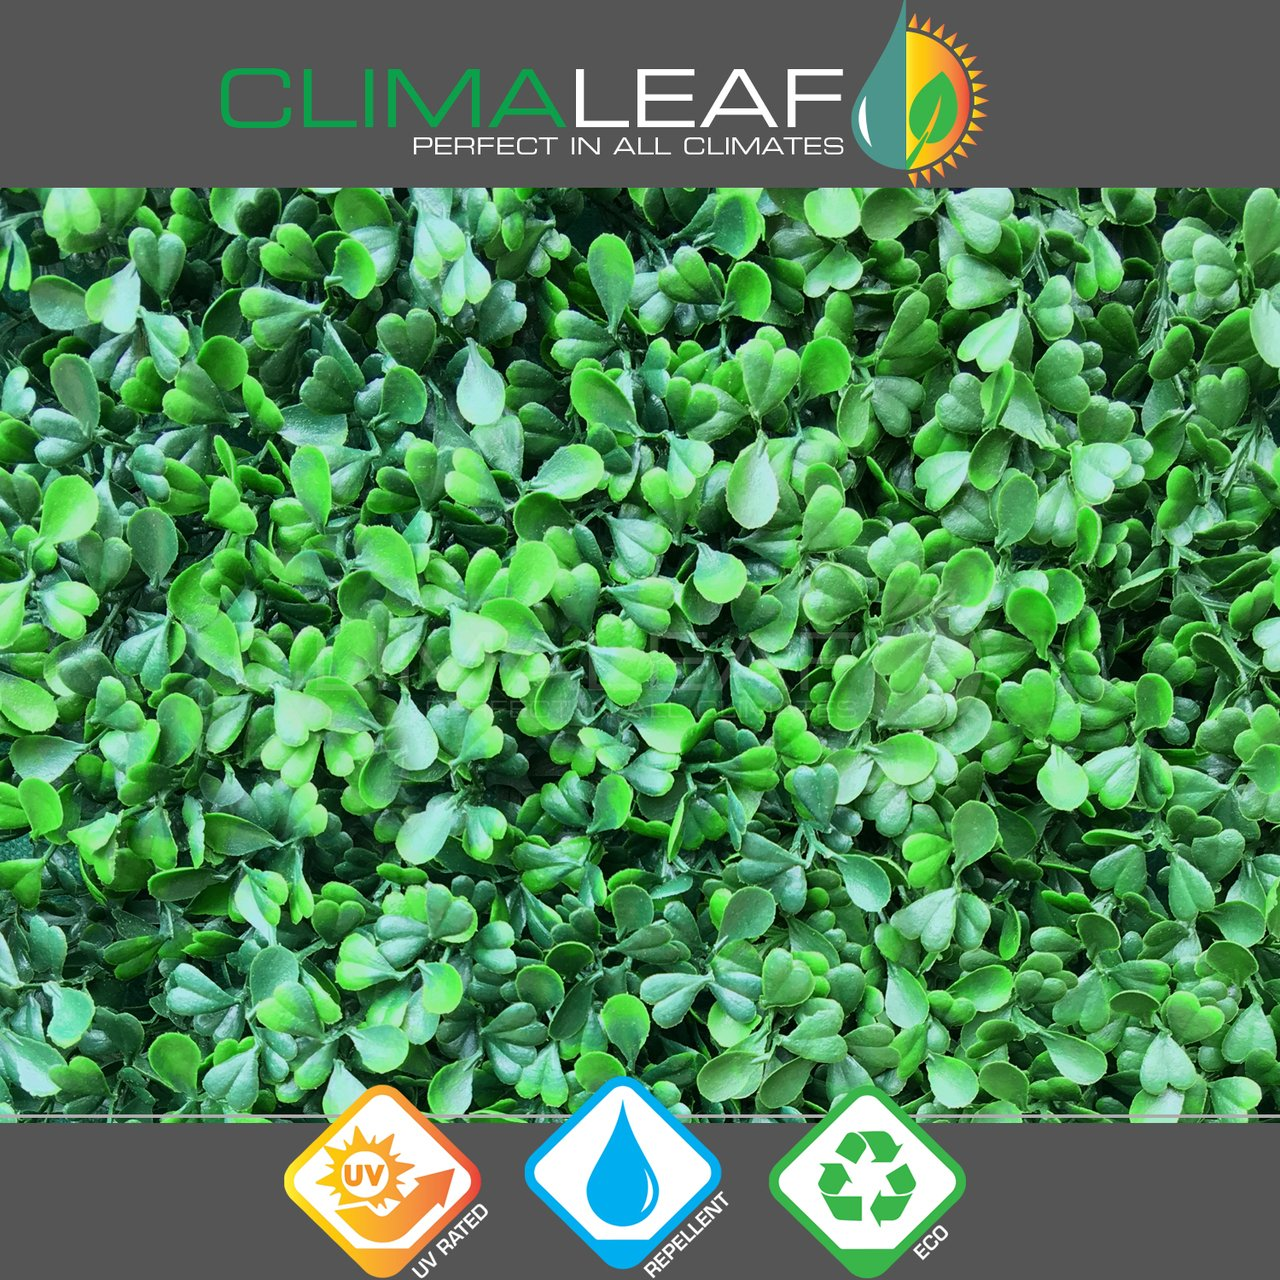 Climaleaf Artificial Uv Boxwood Light Green. 3yr warranty from fading.